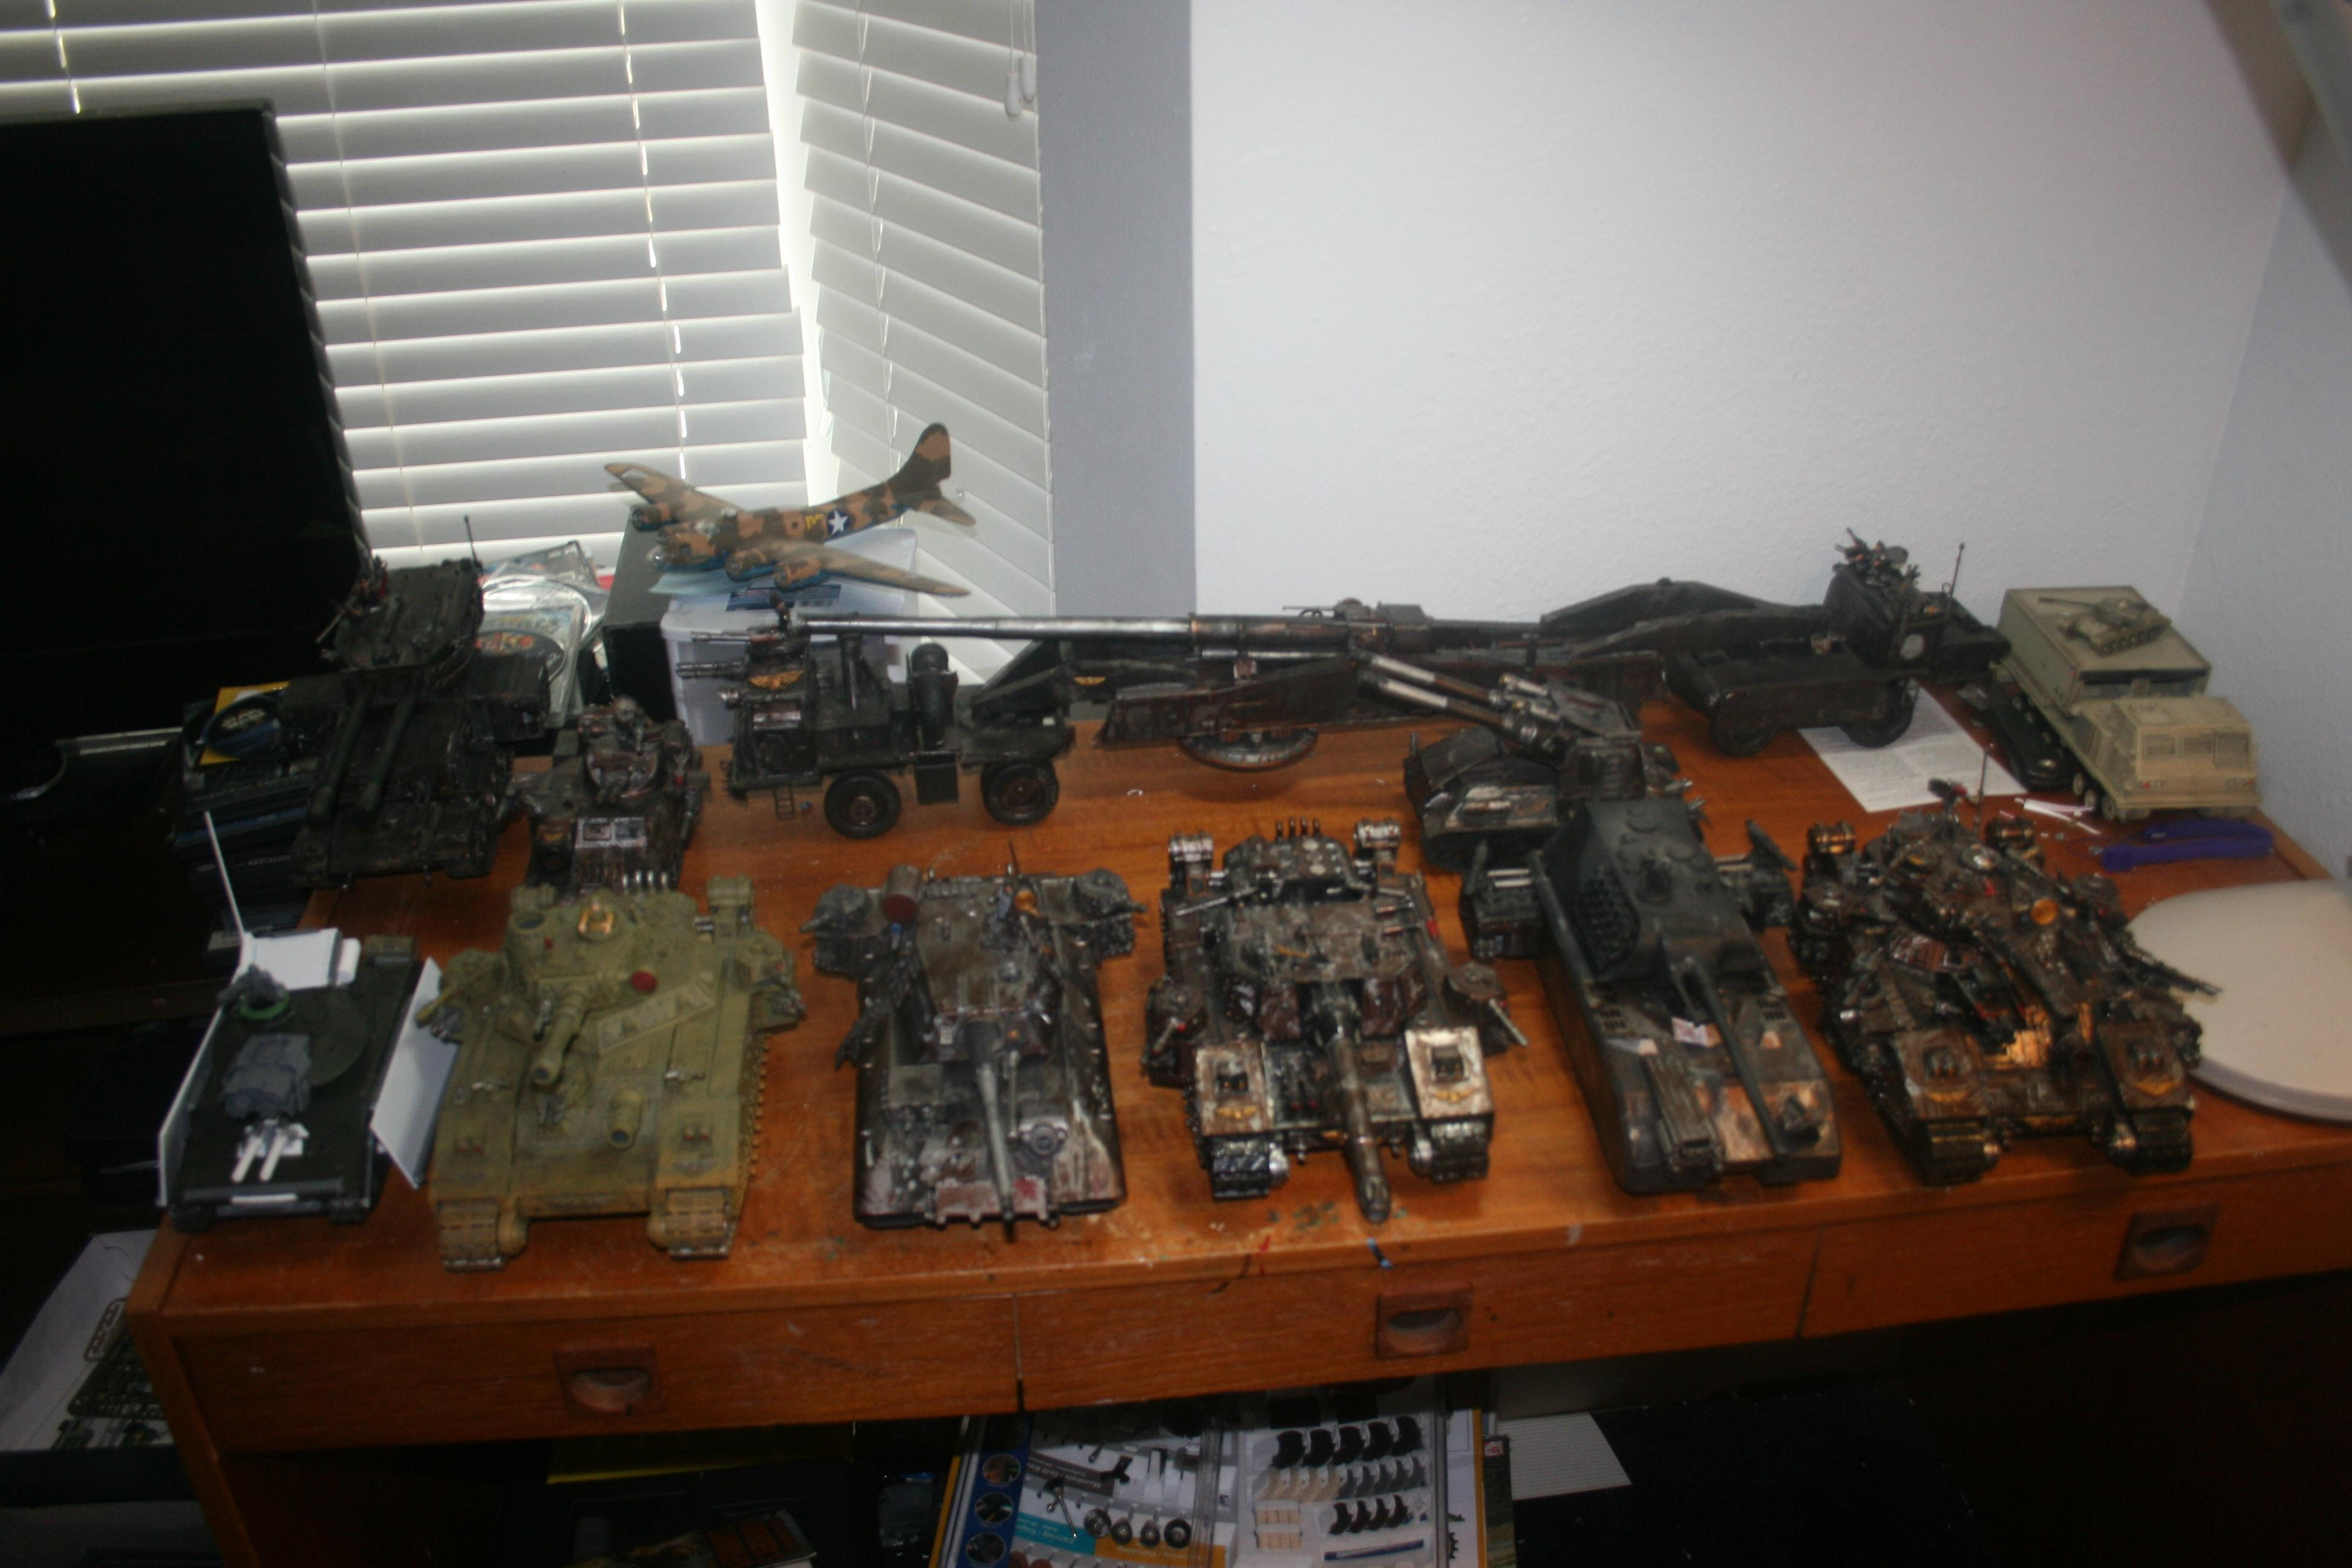 Baneblade, Imperial Guard, Macharius, Malcador, Shadowsword, Super-heavy